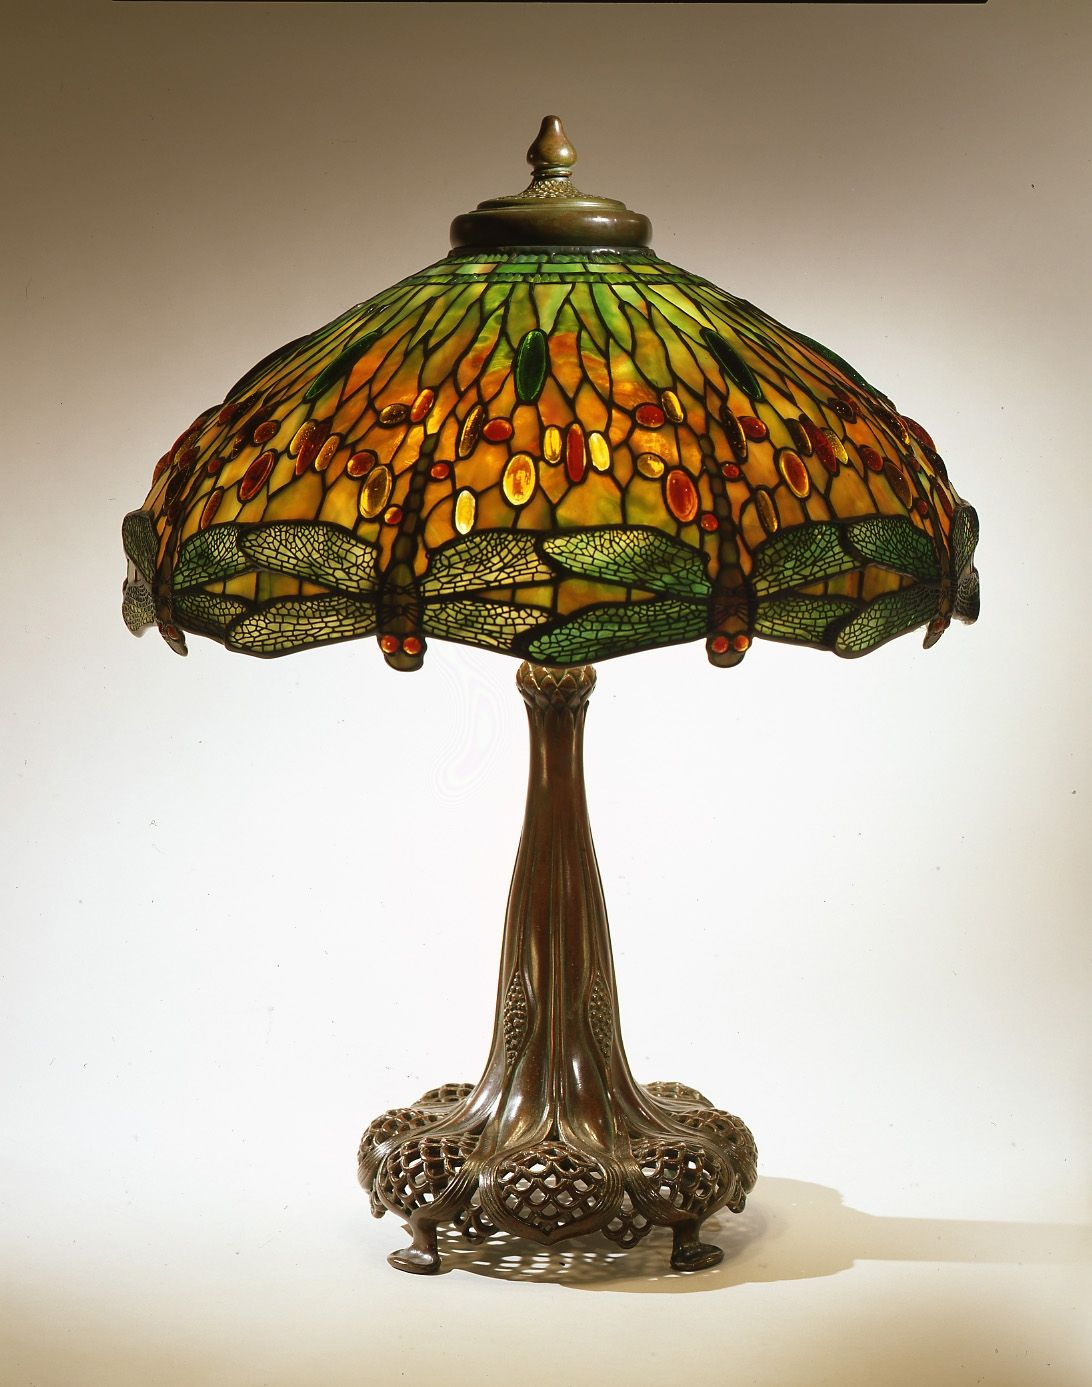 Tiffany Style Lamp Shades Gorgeous Tiffany Style Lamp Shades For Table Lamps  Httpargharts Design Inspiration